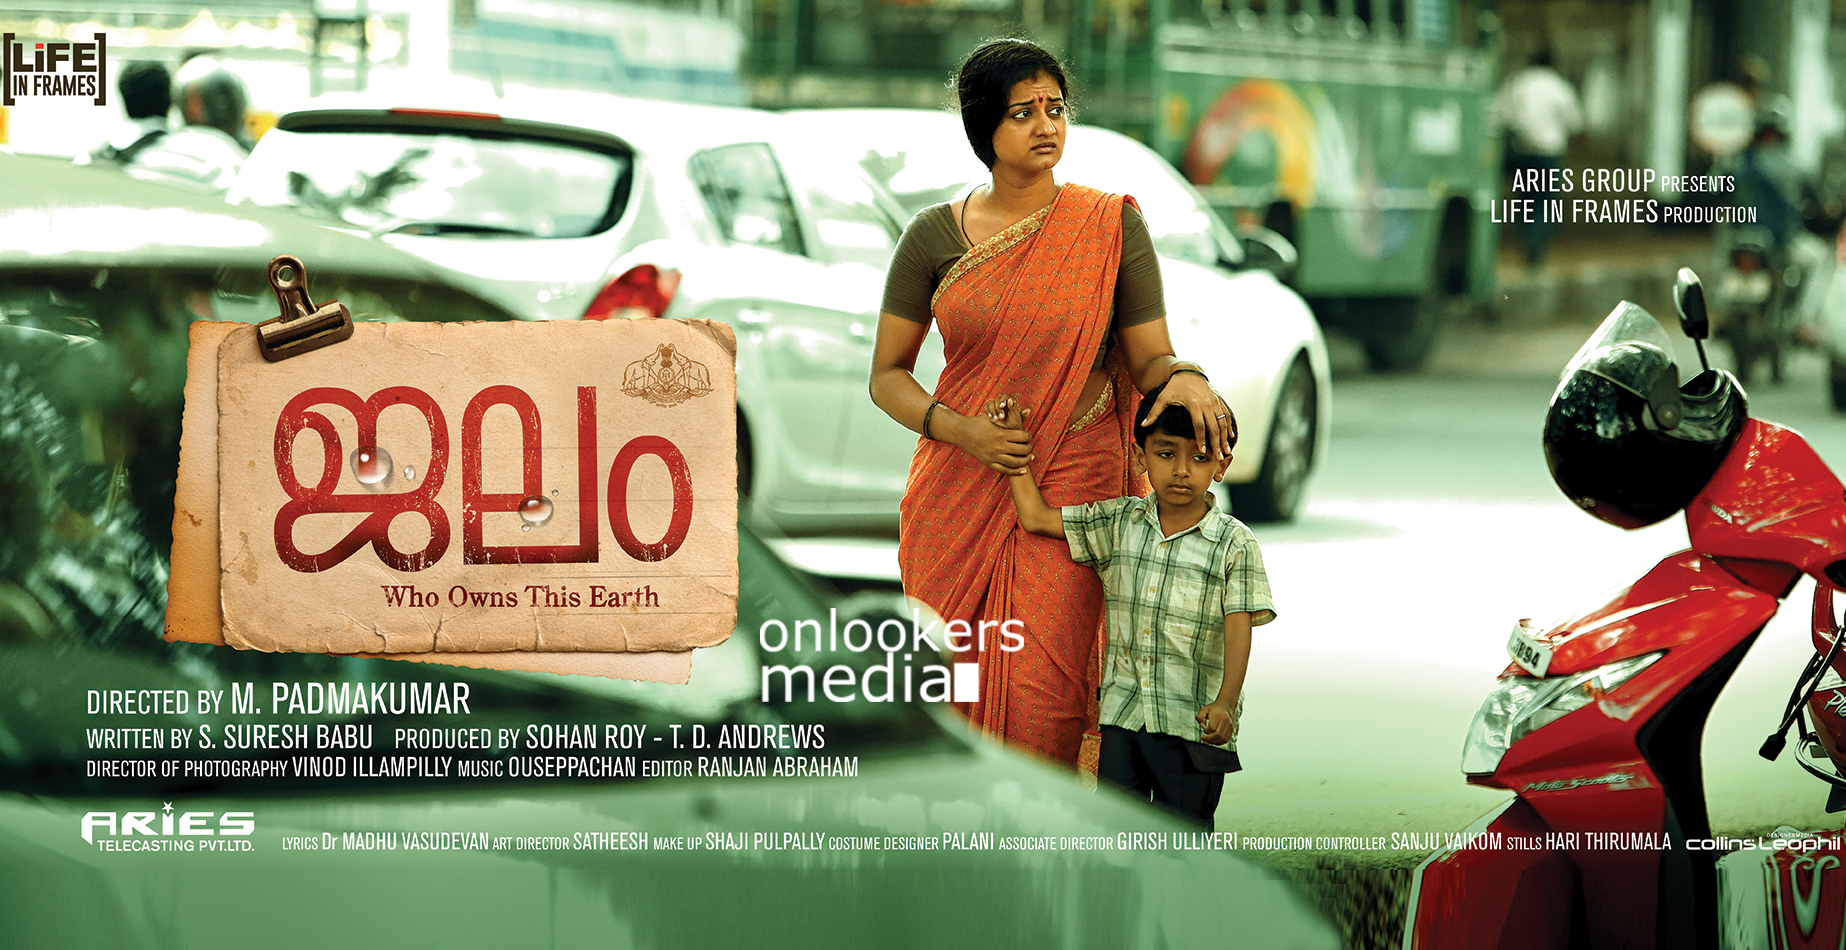 Jalam, Jalam malayalam movie, priyanka in Jalam, sohan roy, aries group, m padmakumar